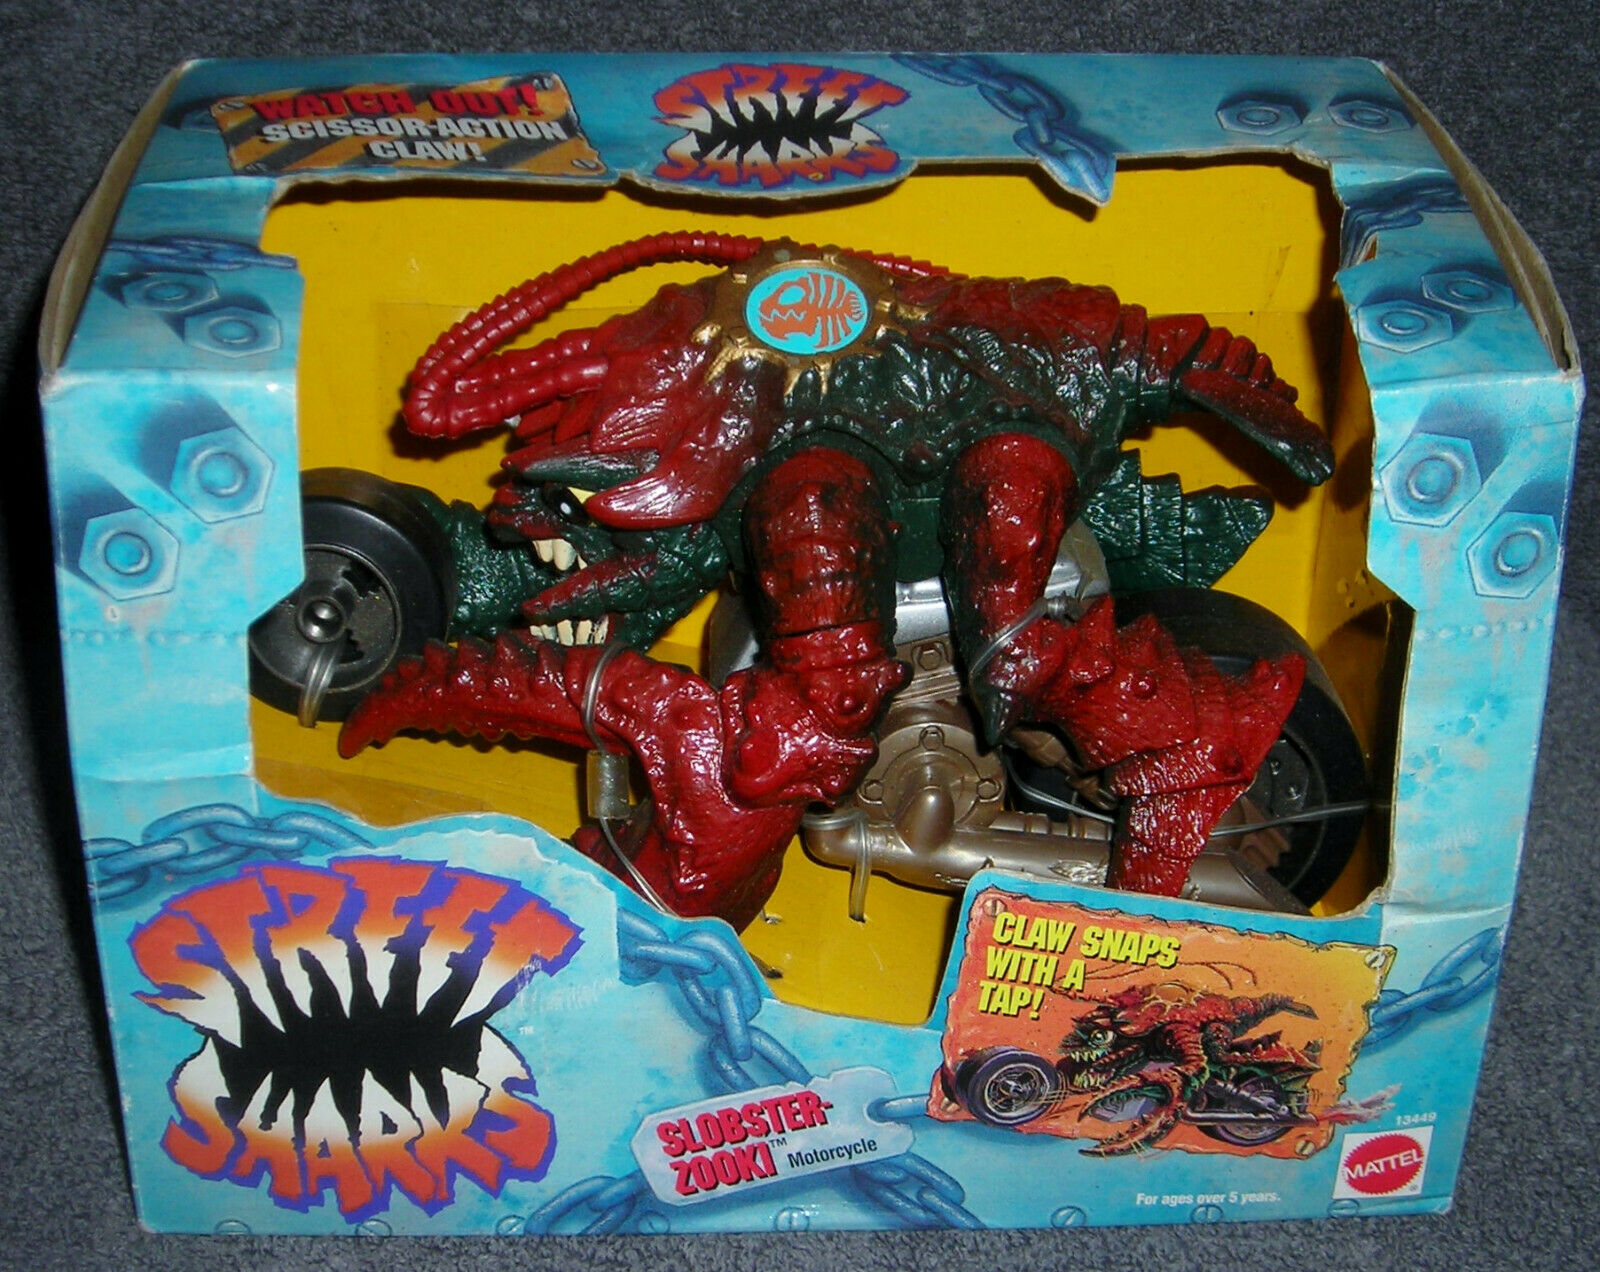 STREET SHARKS 9  SLOBSTER ZOOKI MOTORCYCLE ACTION FIGURE SCISSOR ACTION CLAW